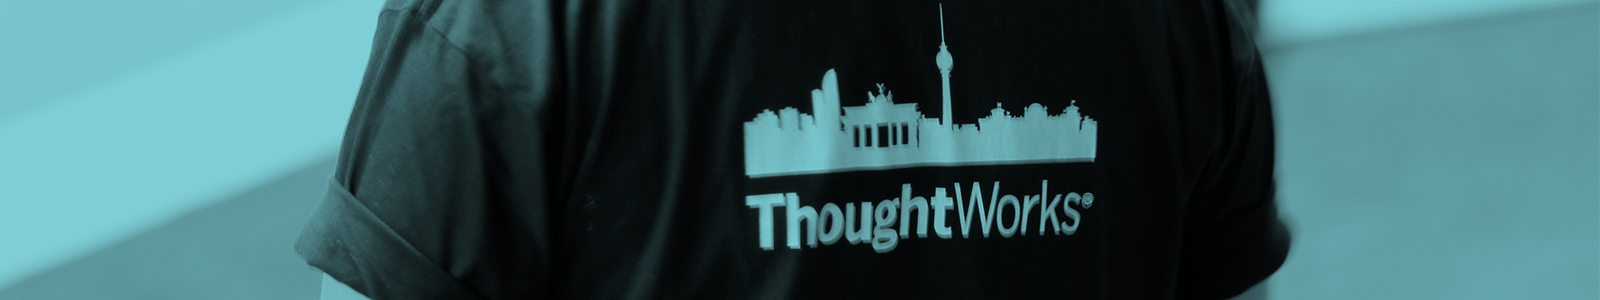 Berlin I ThoughtWorks | ThoughtWorks